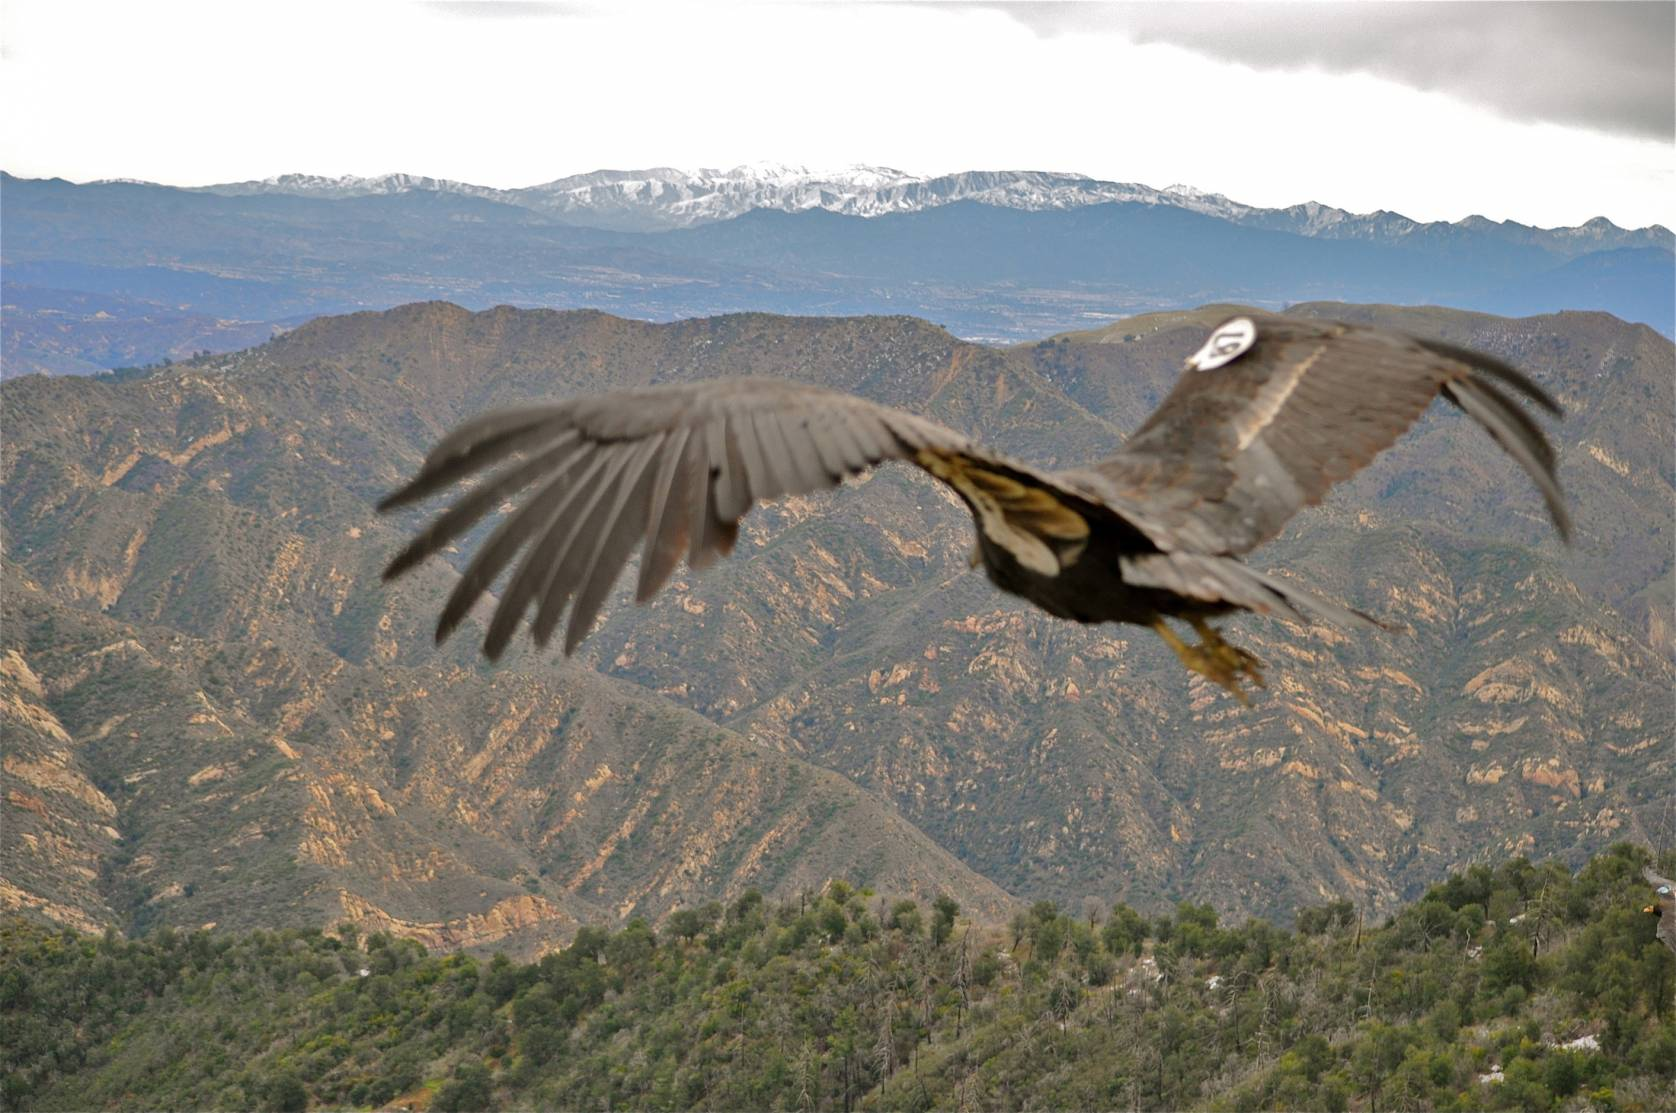 a tagged California Condor flying over mountains